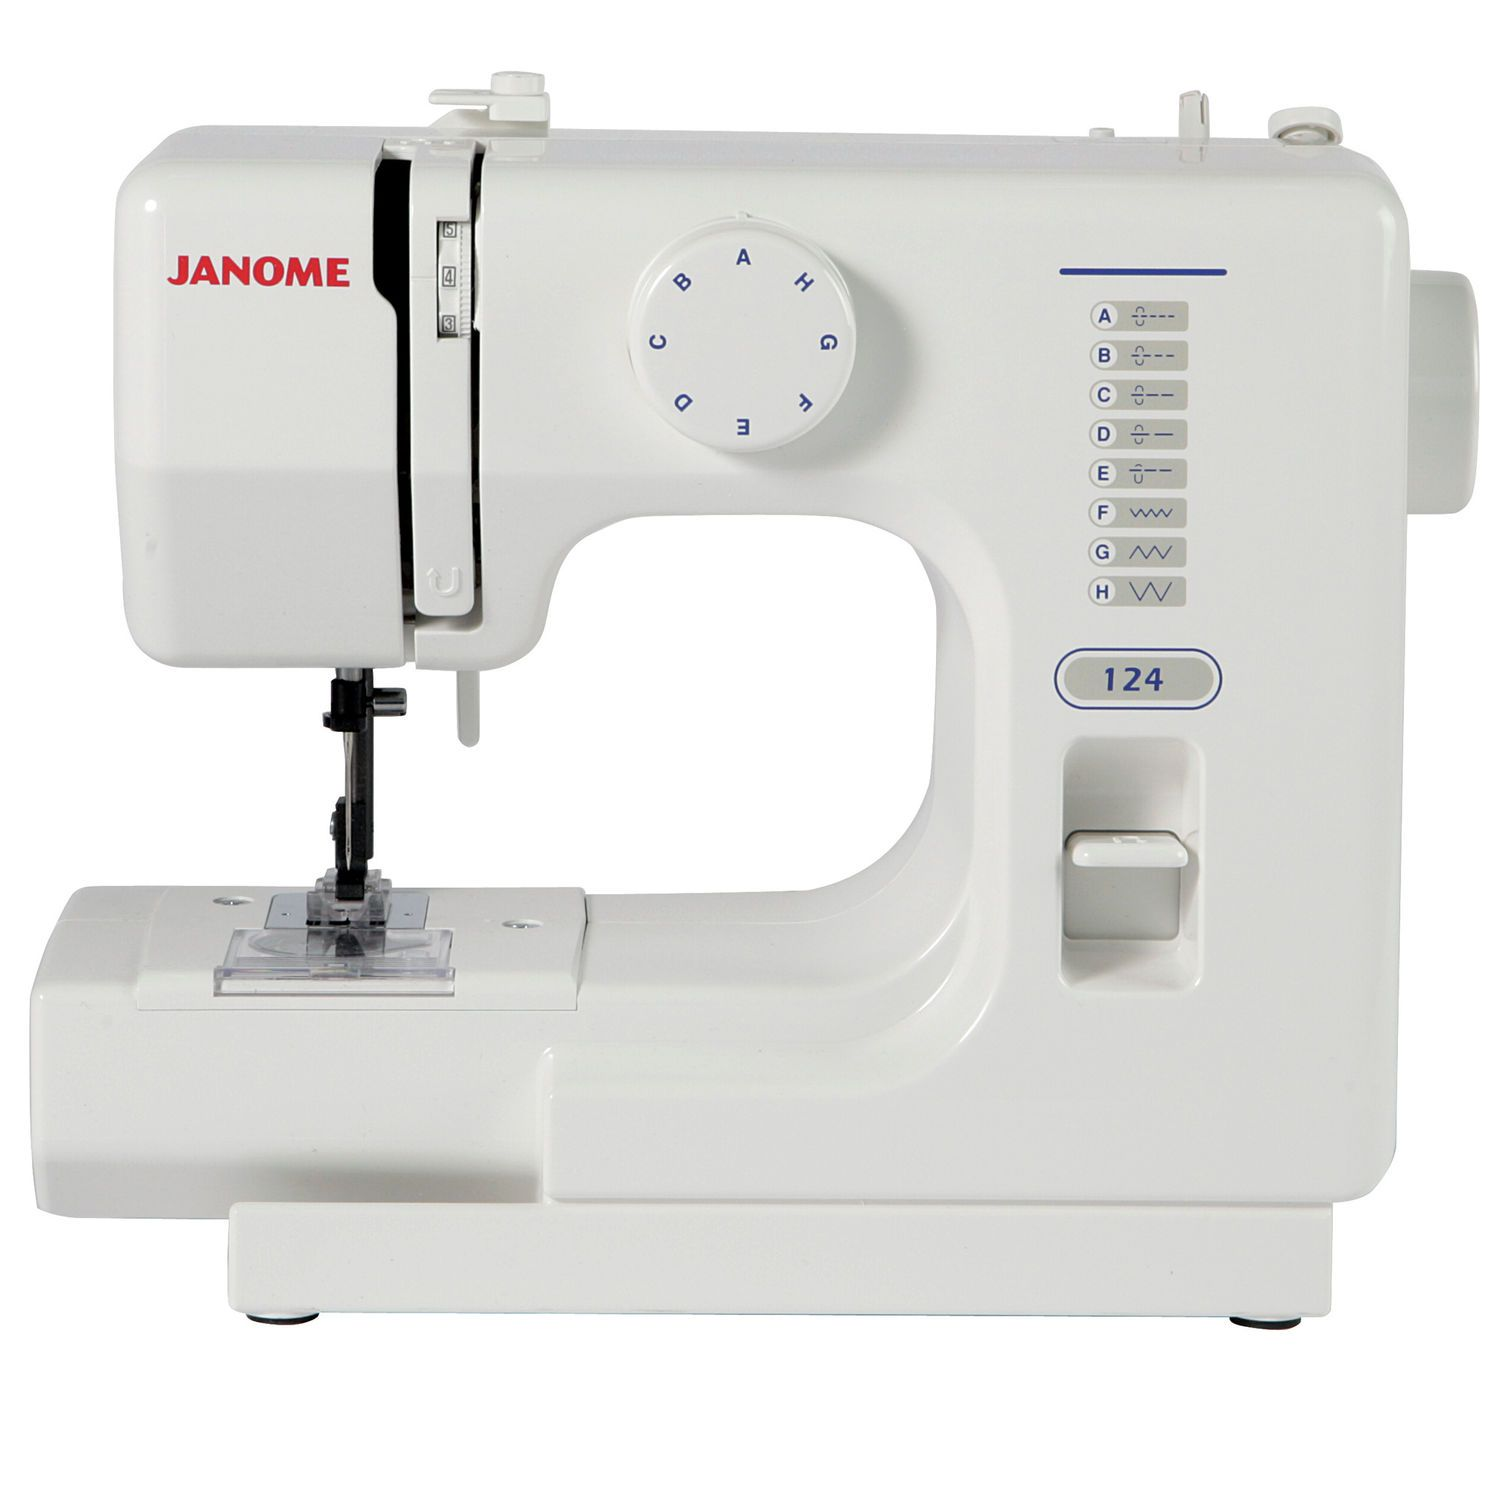 quilt machines quilting the intermediate best machine sewing janome jackie reeve by